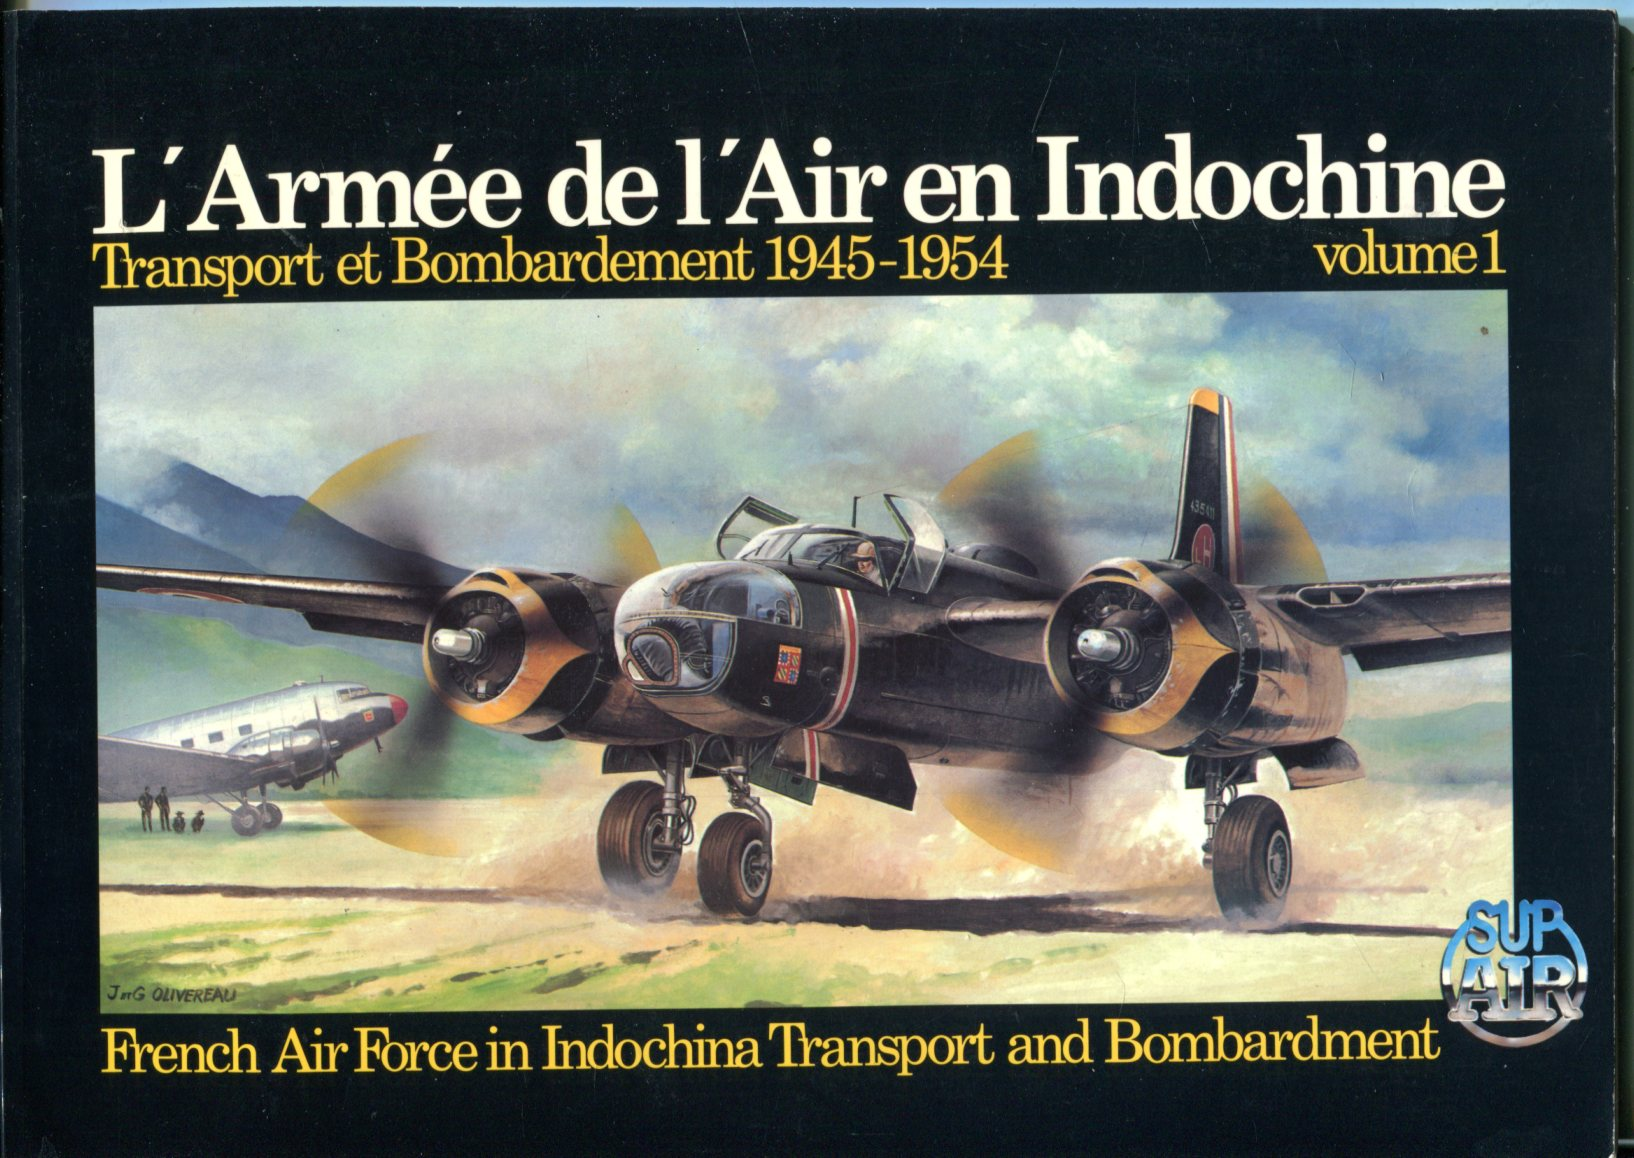 Image for L'Armee de l'Air en Indochine: Transport et Bombardment 1945-1954 (French Air Force in Indochina: Transport and Bombardment 1945-1954), Volume 1